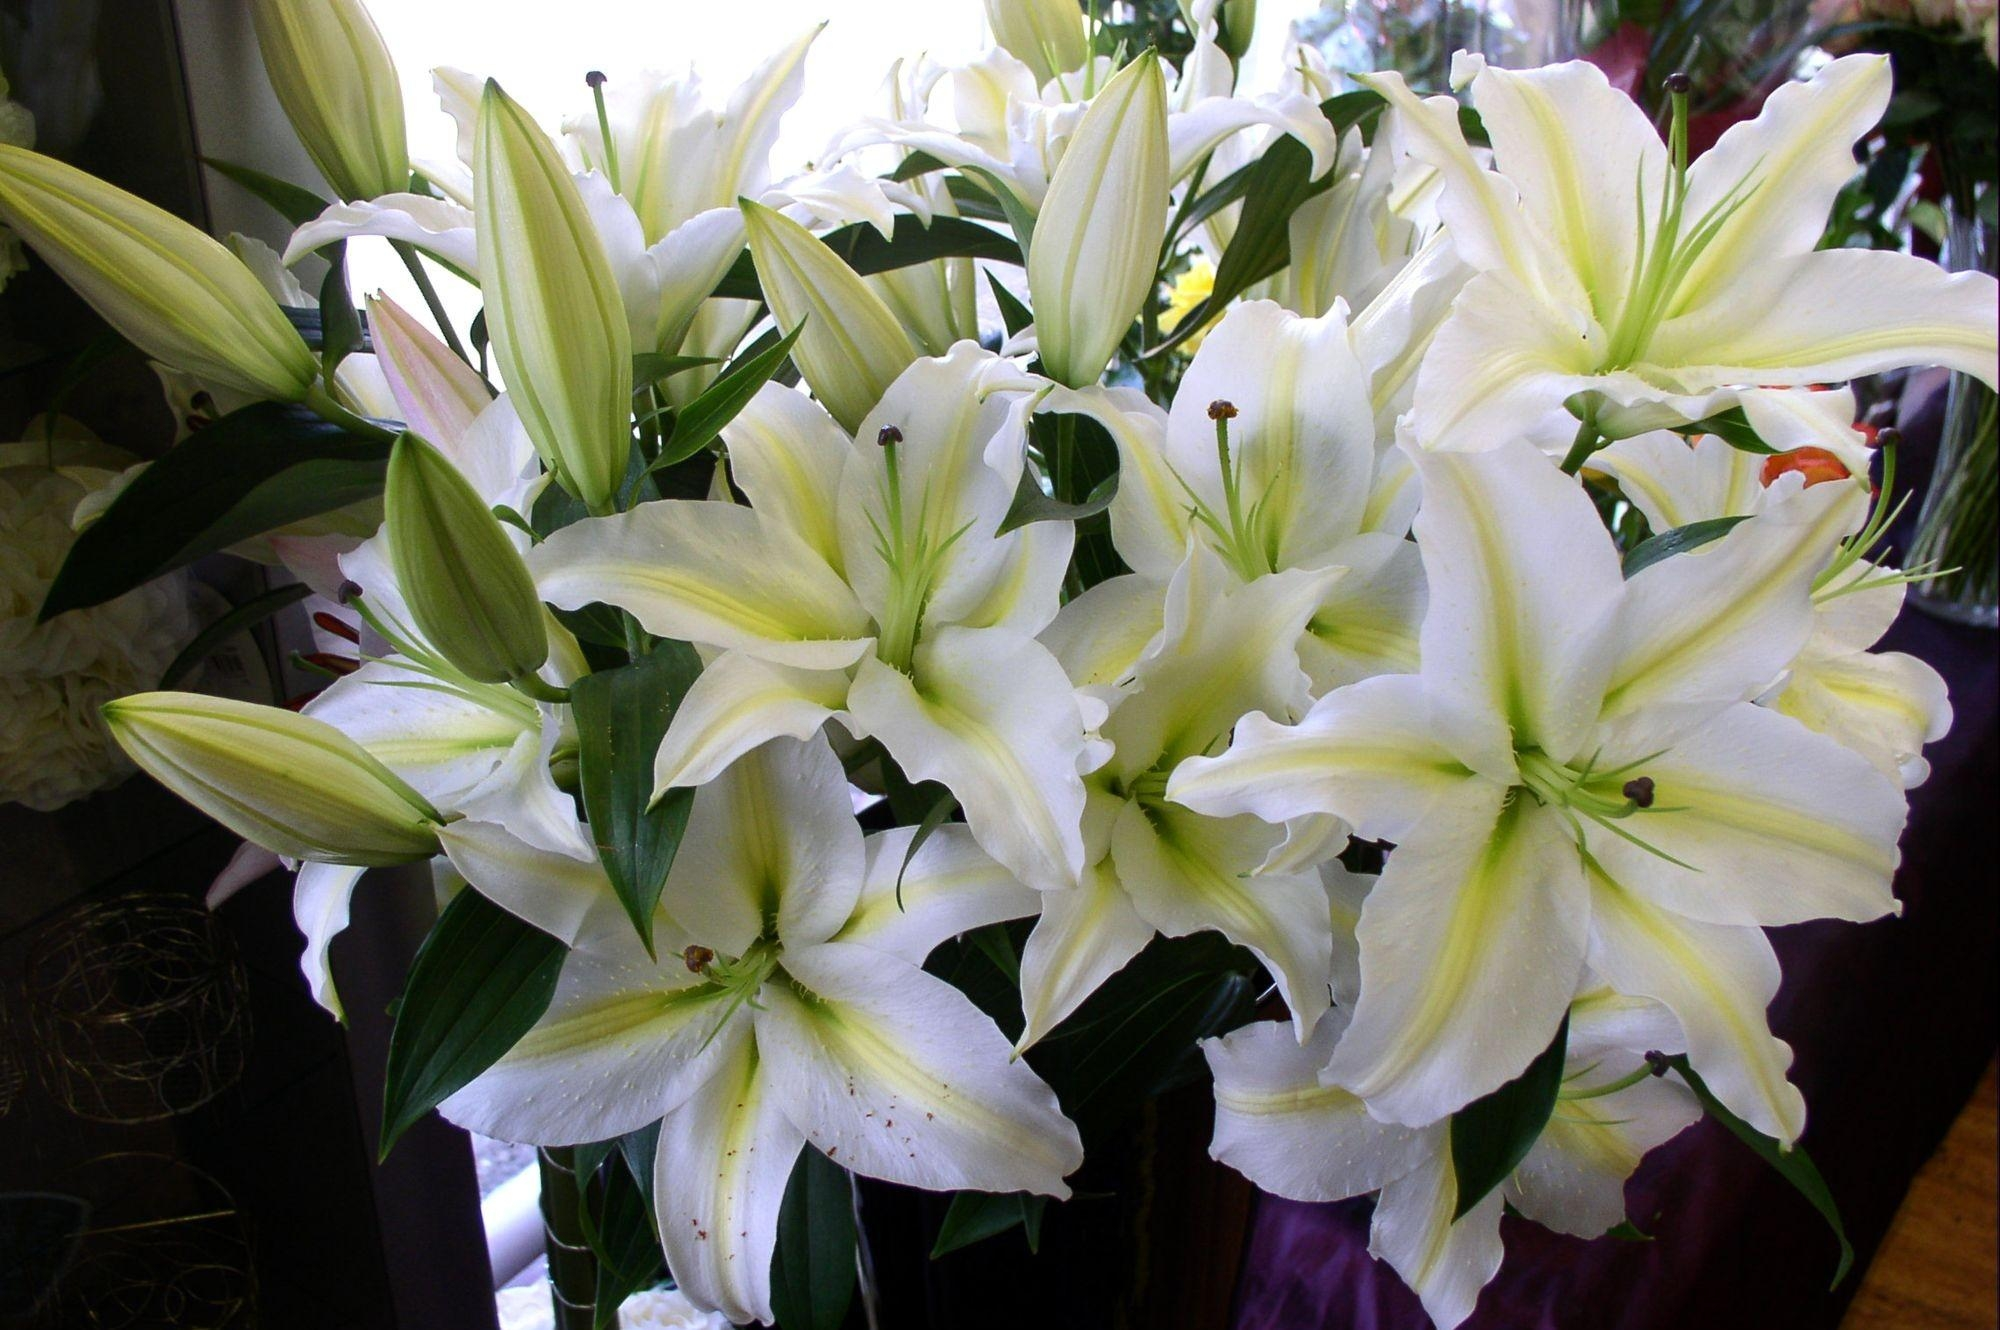 94520 download wallpaper Flowers, Lilies, Bouquet, Buds, Snow White screensavers and pictures for free